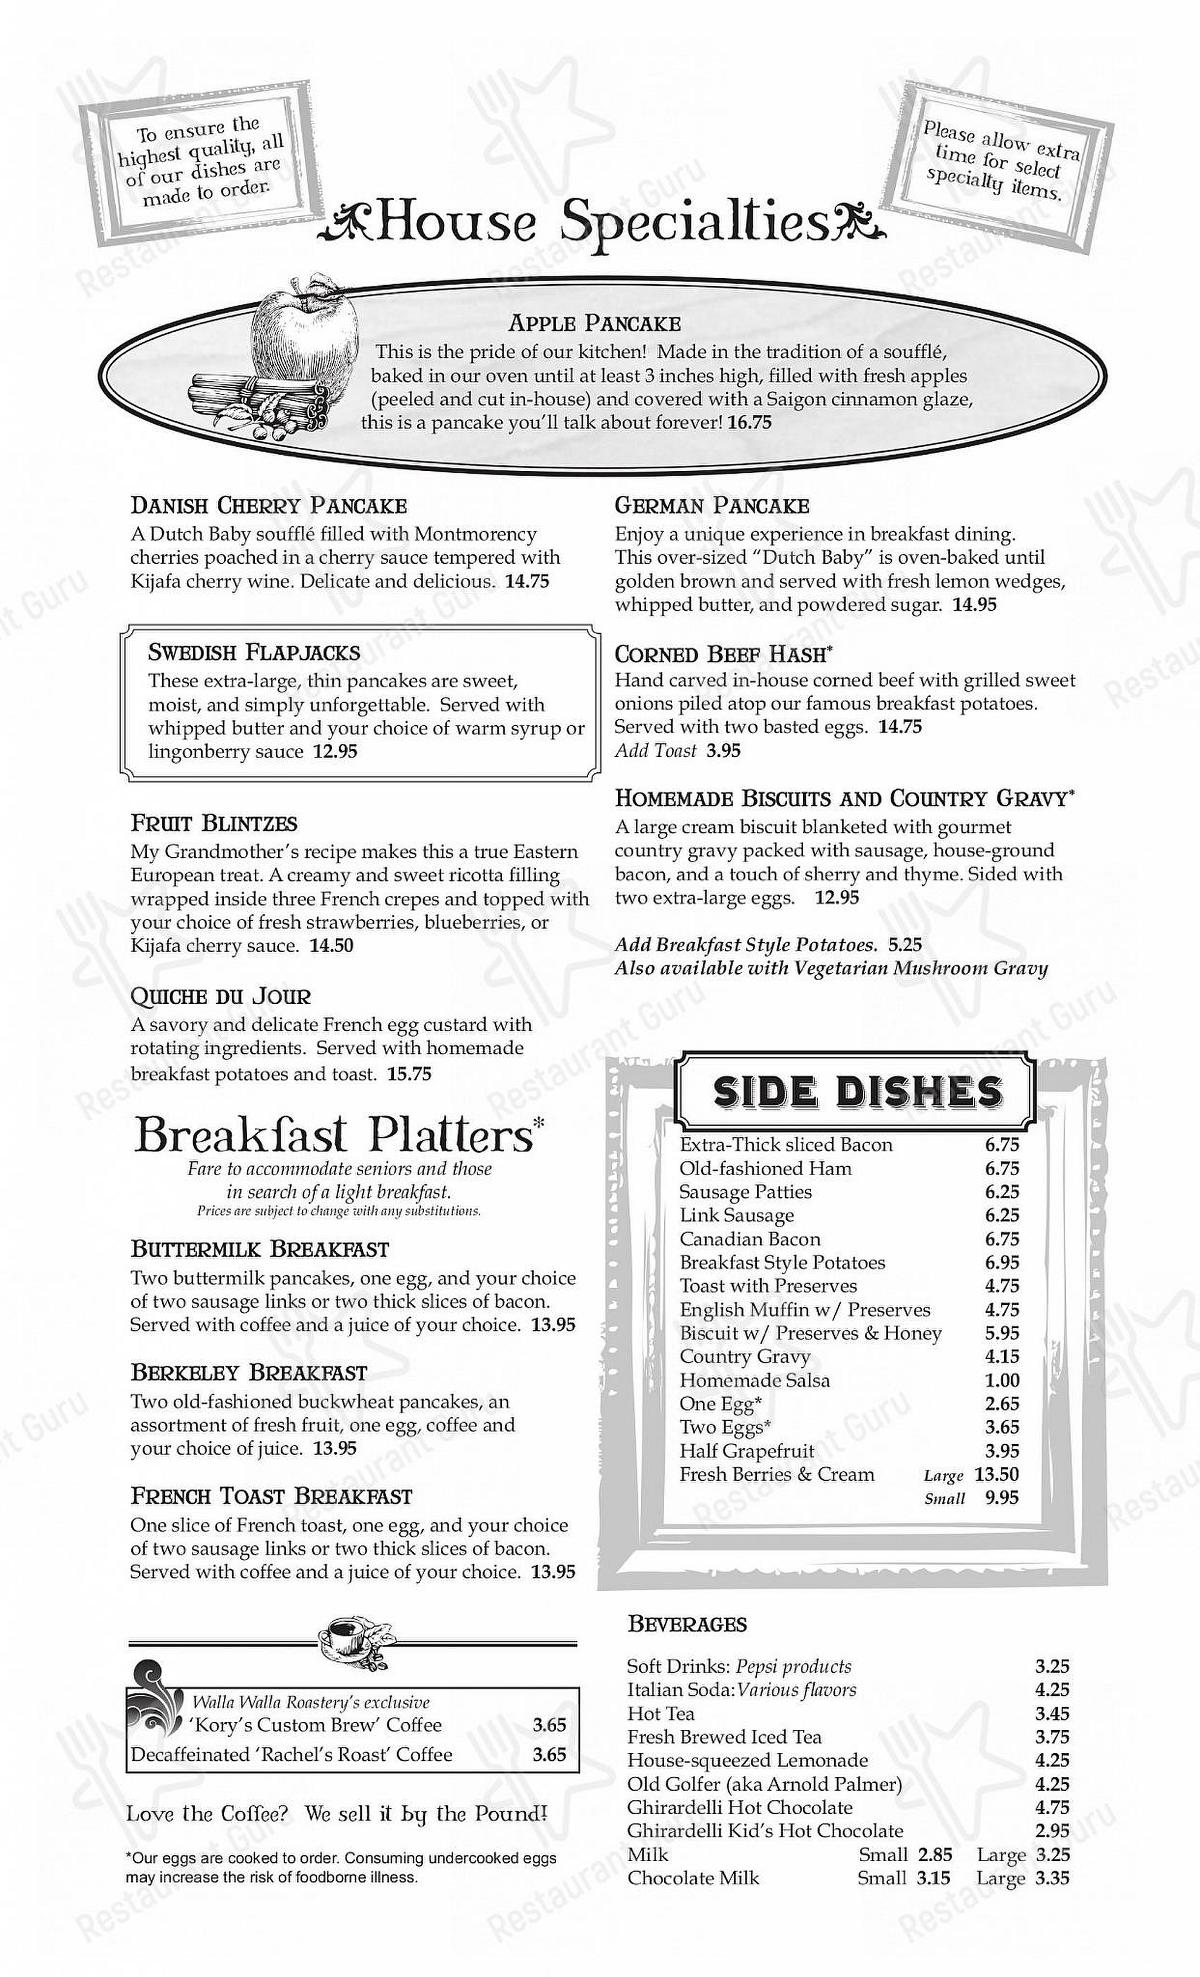 Check out the menu for The Maple Counter Cafe